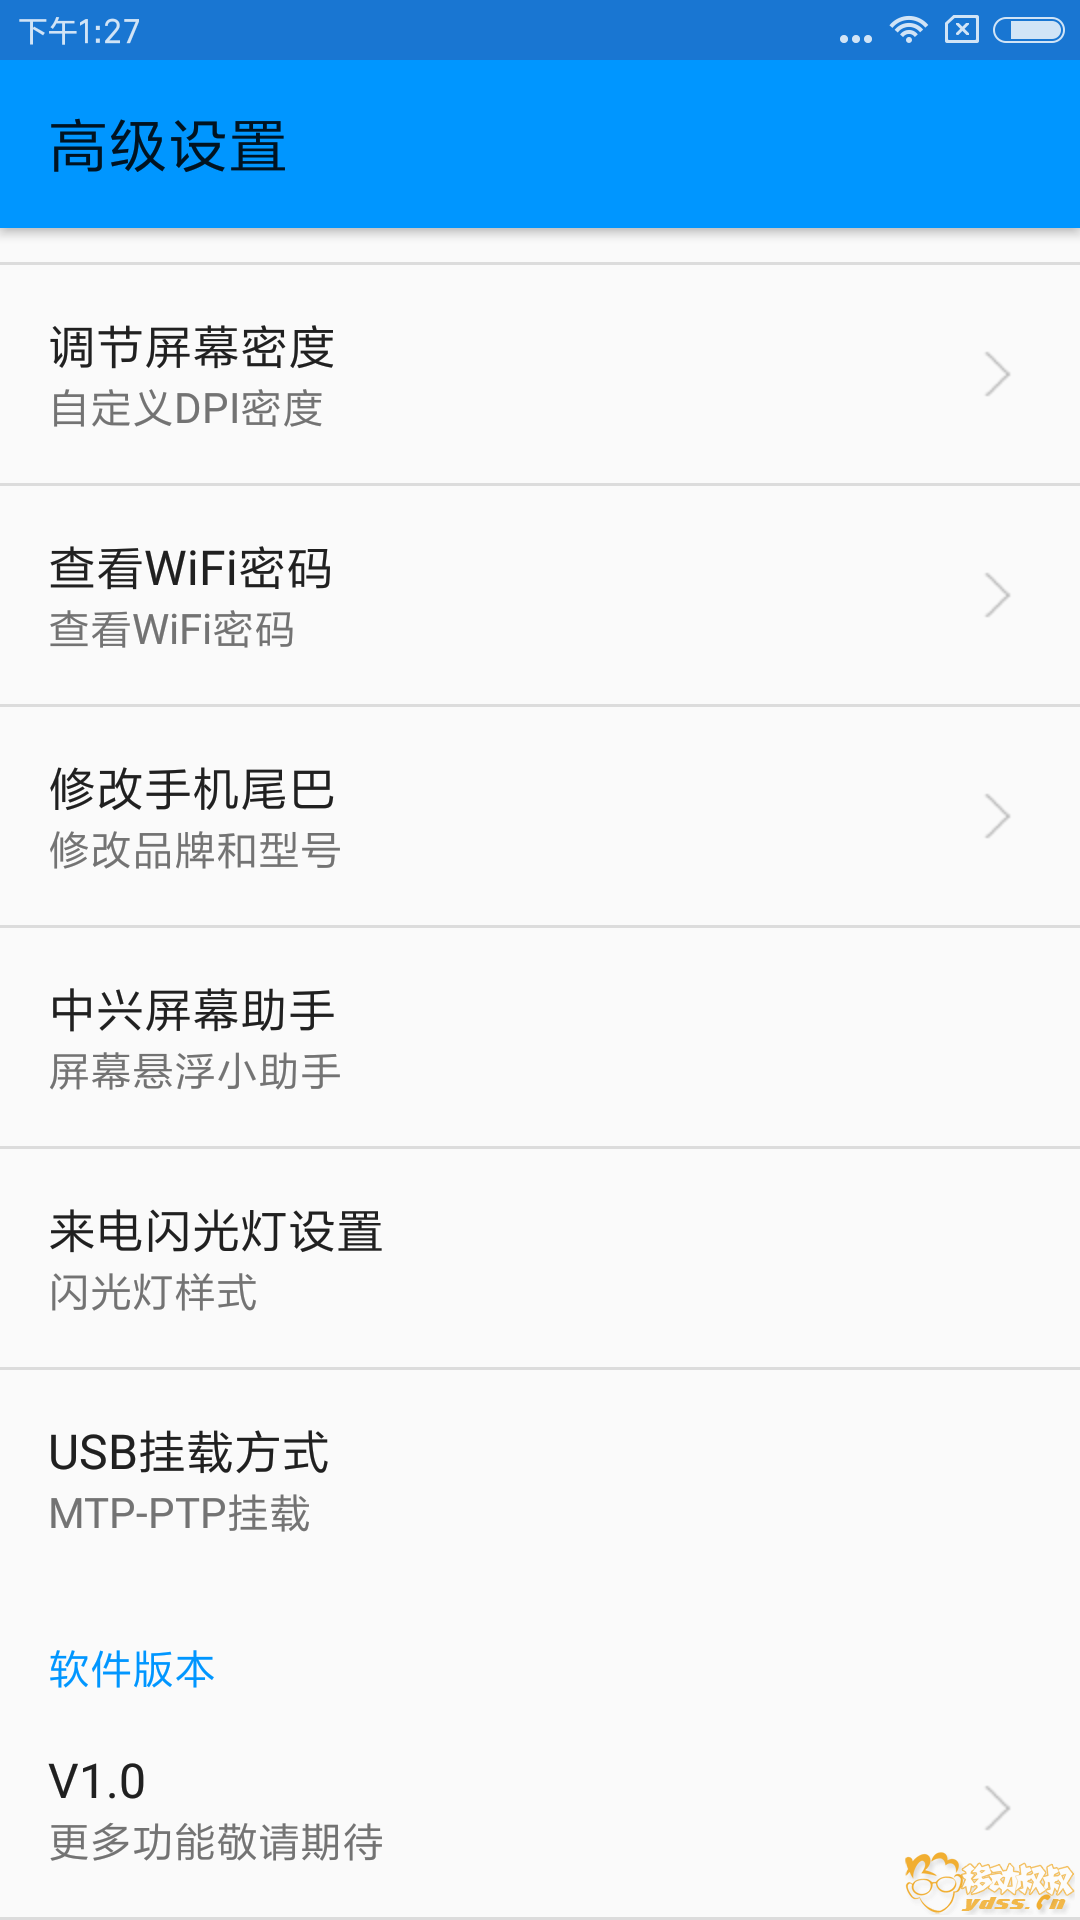 Screenshot_2017-11-07-13-27-39-249_com.zhanhong.tools.png